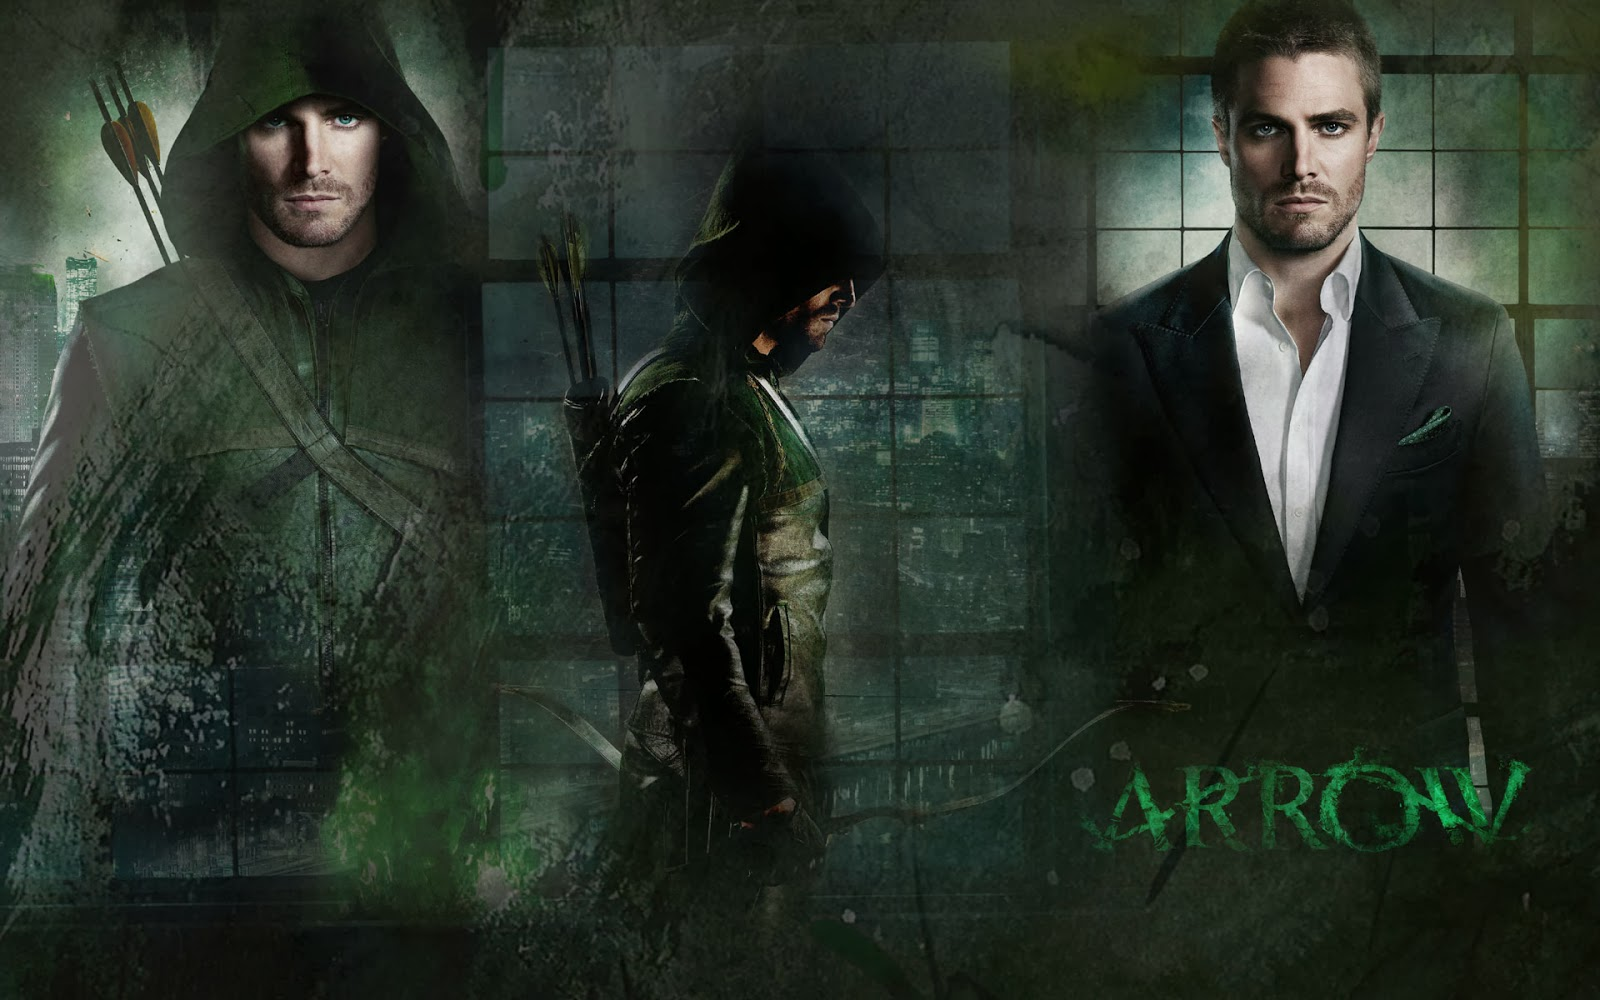 Arrow season 2 spoilers and secrets